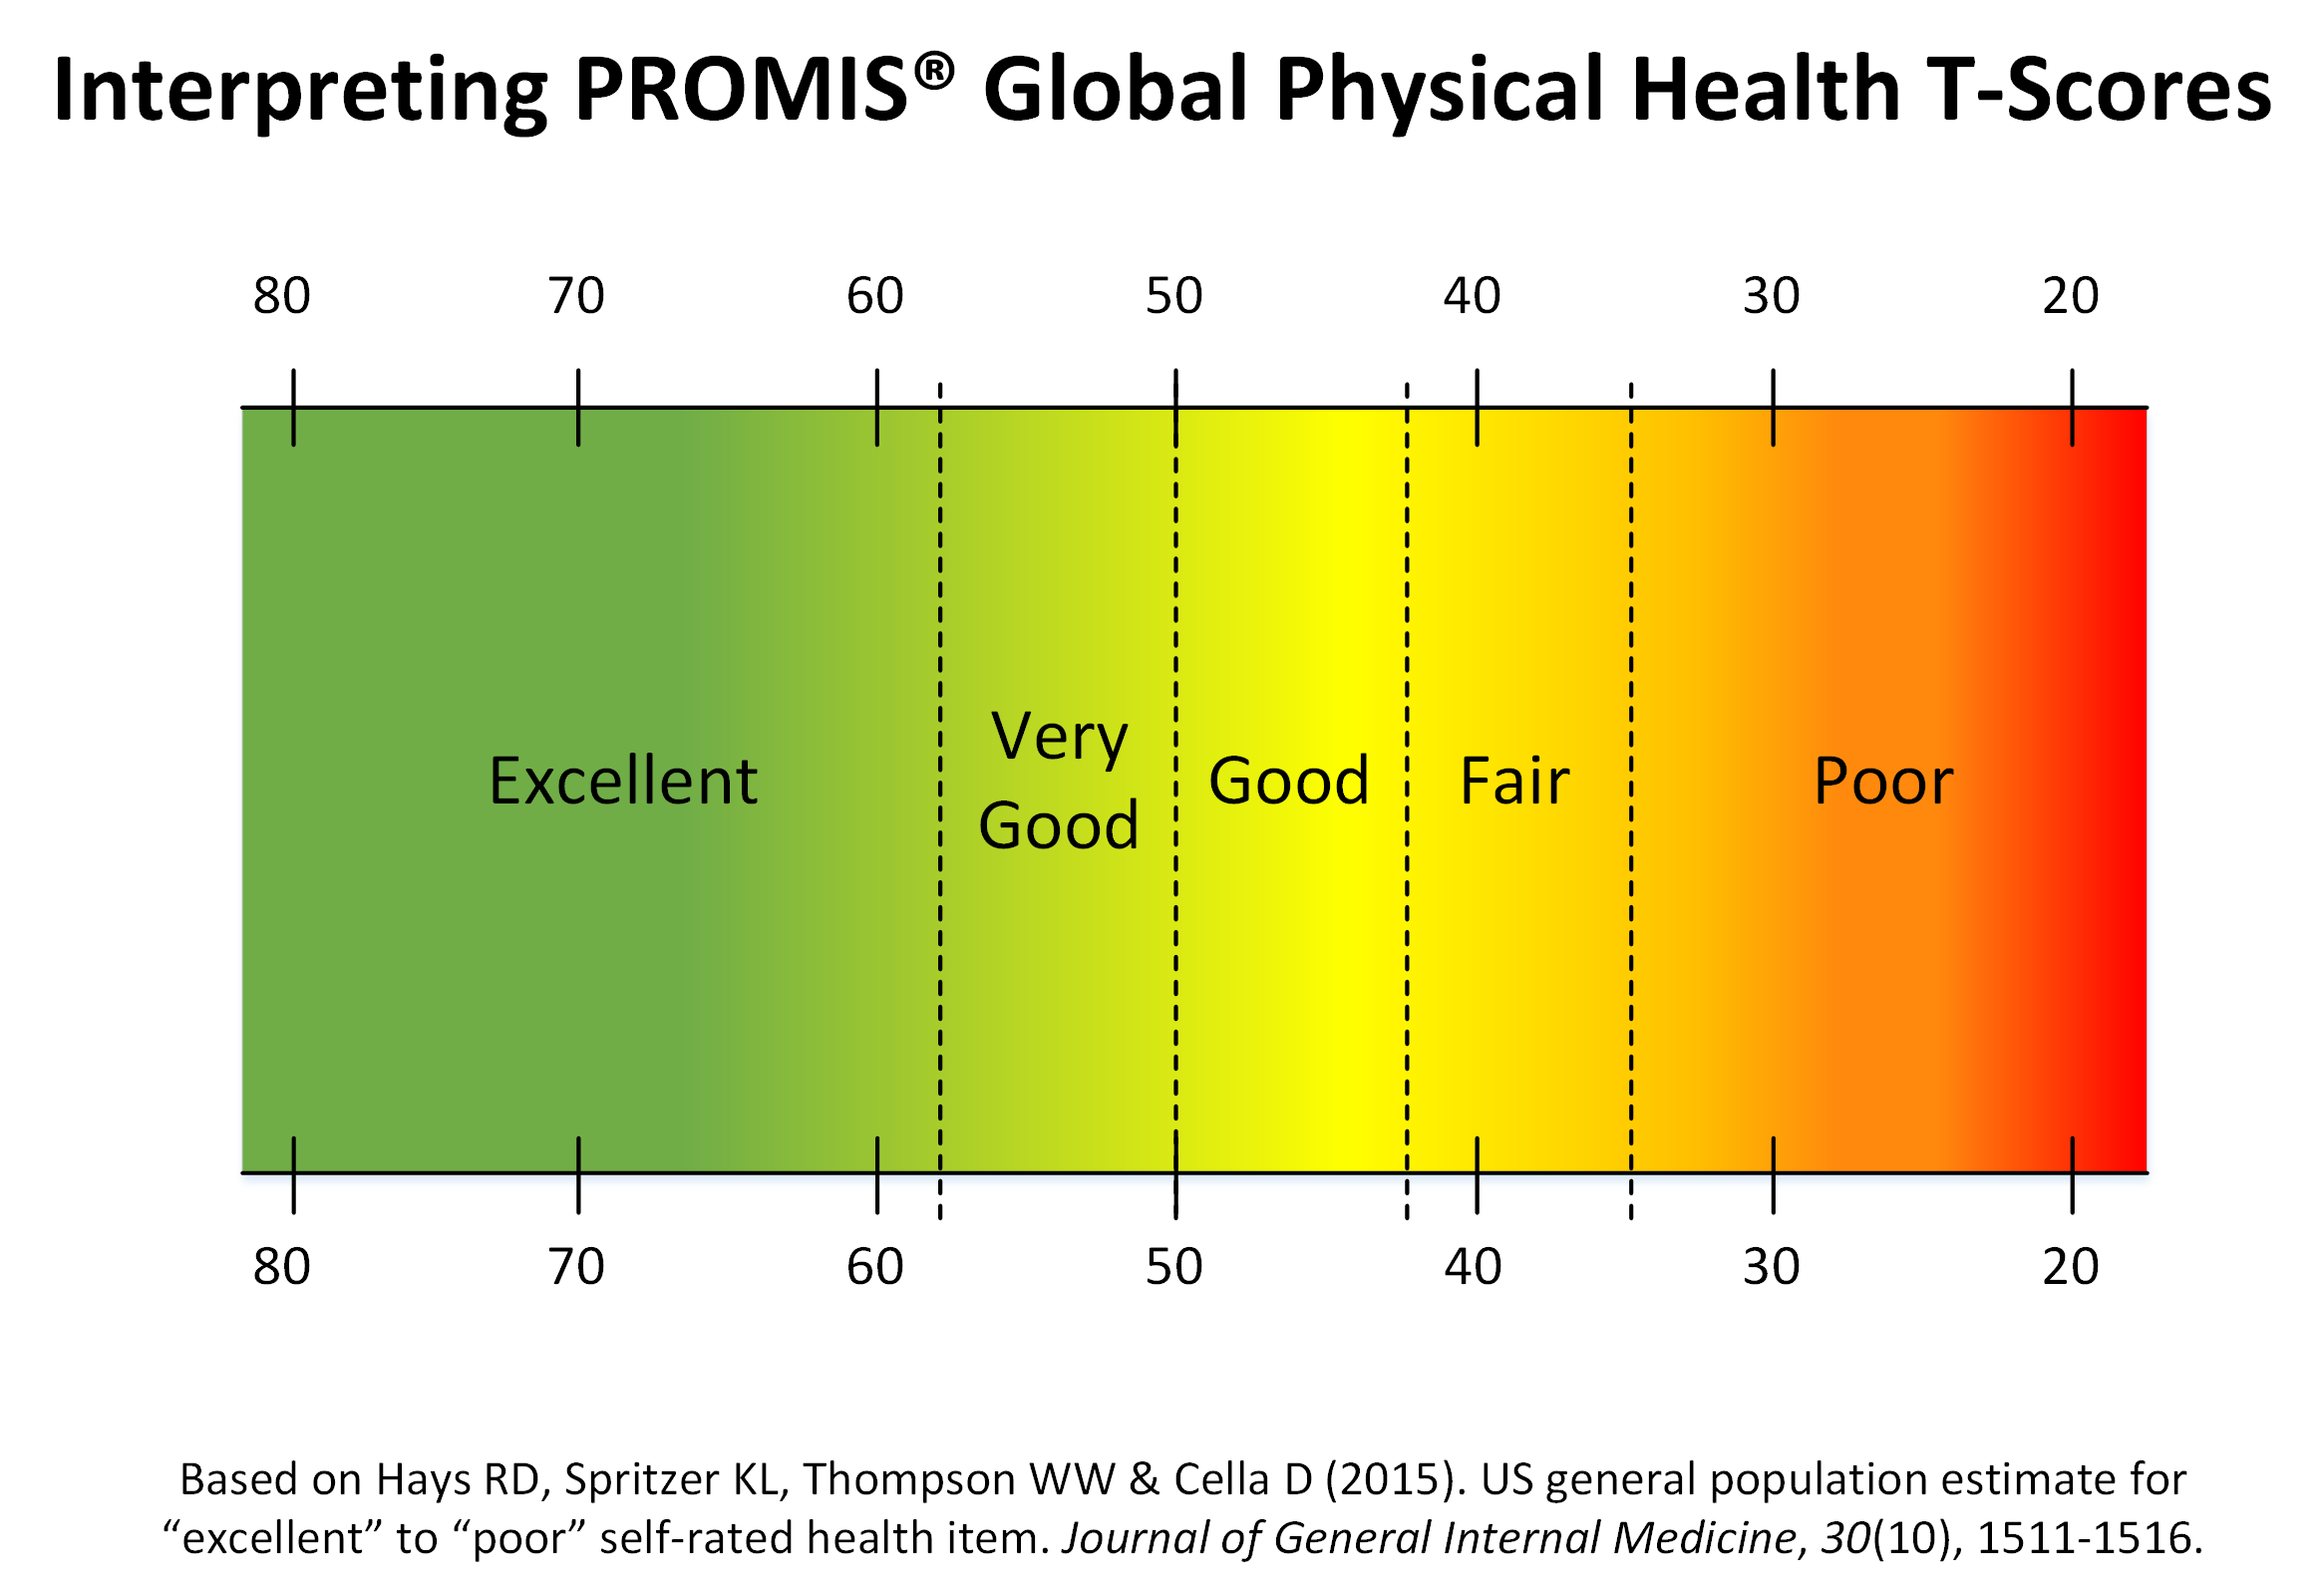 5. PROMIS Global Physical